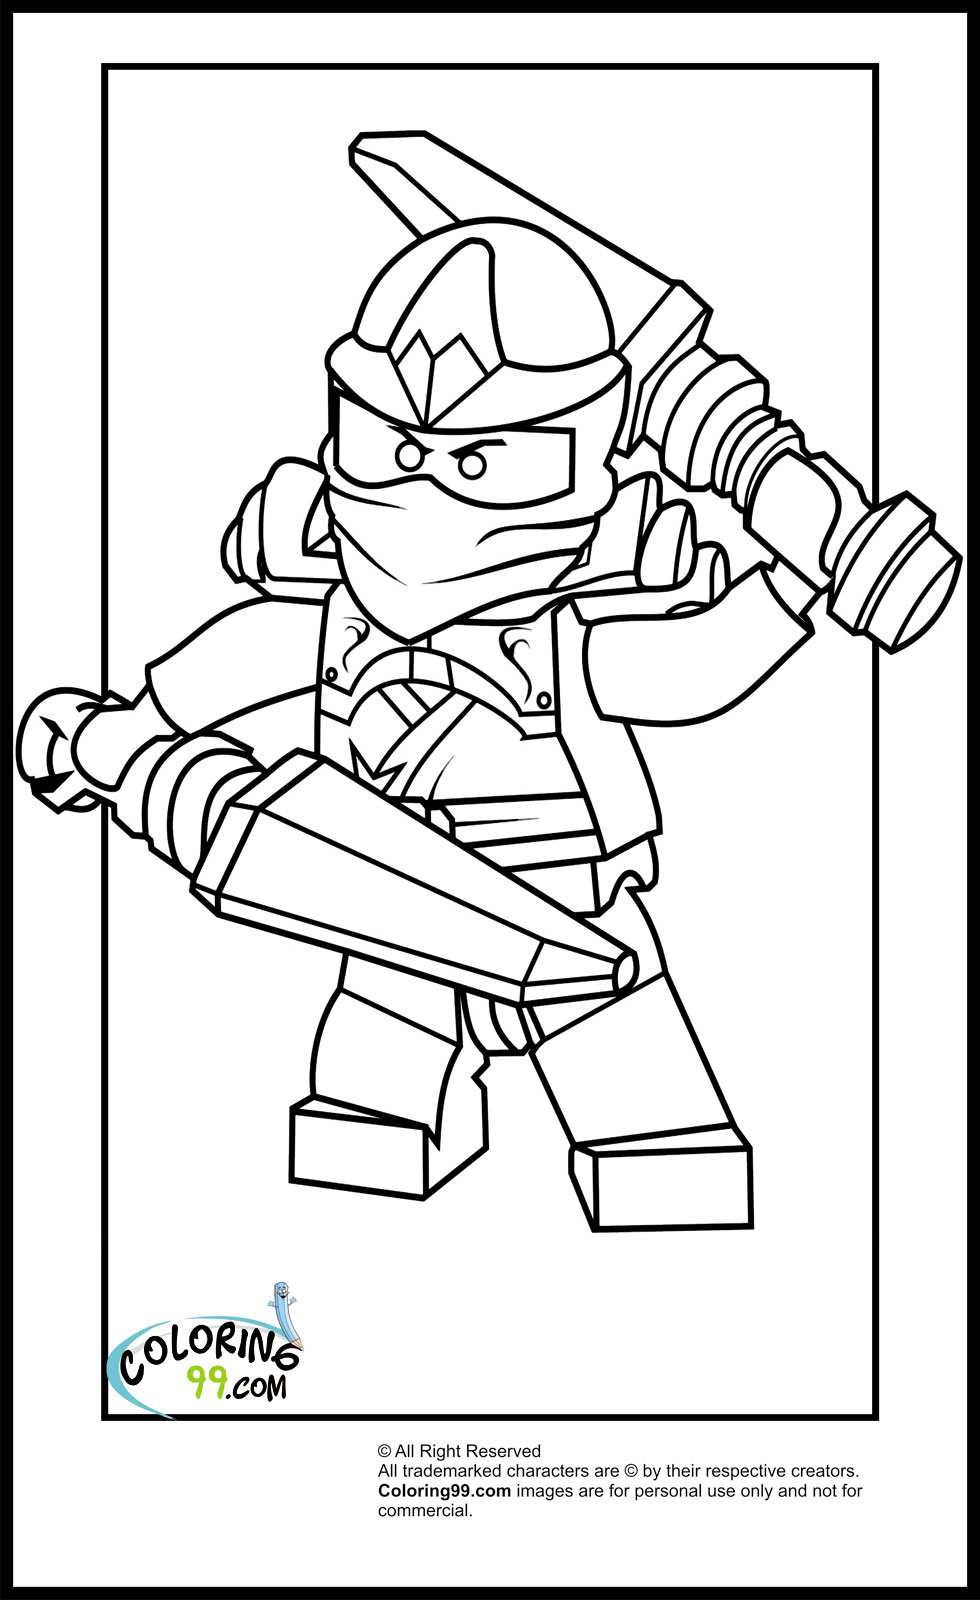 ninja lego coloring pages - lego ninjago kai coloring pages team colors